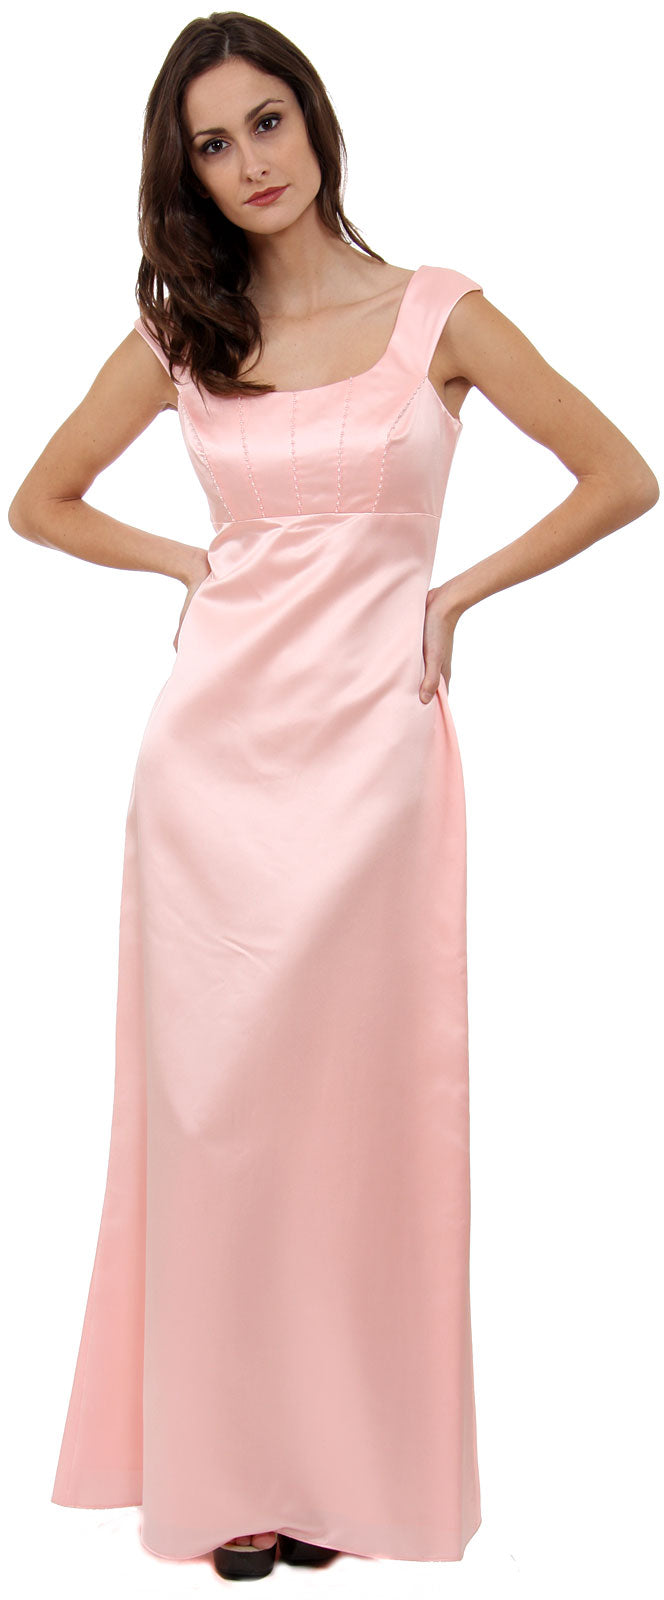 Main image of Boat Neck Beaded Bridesmaid Dress